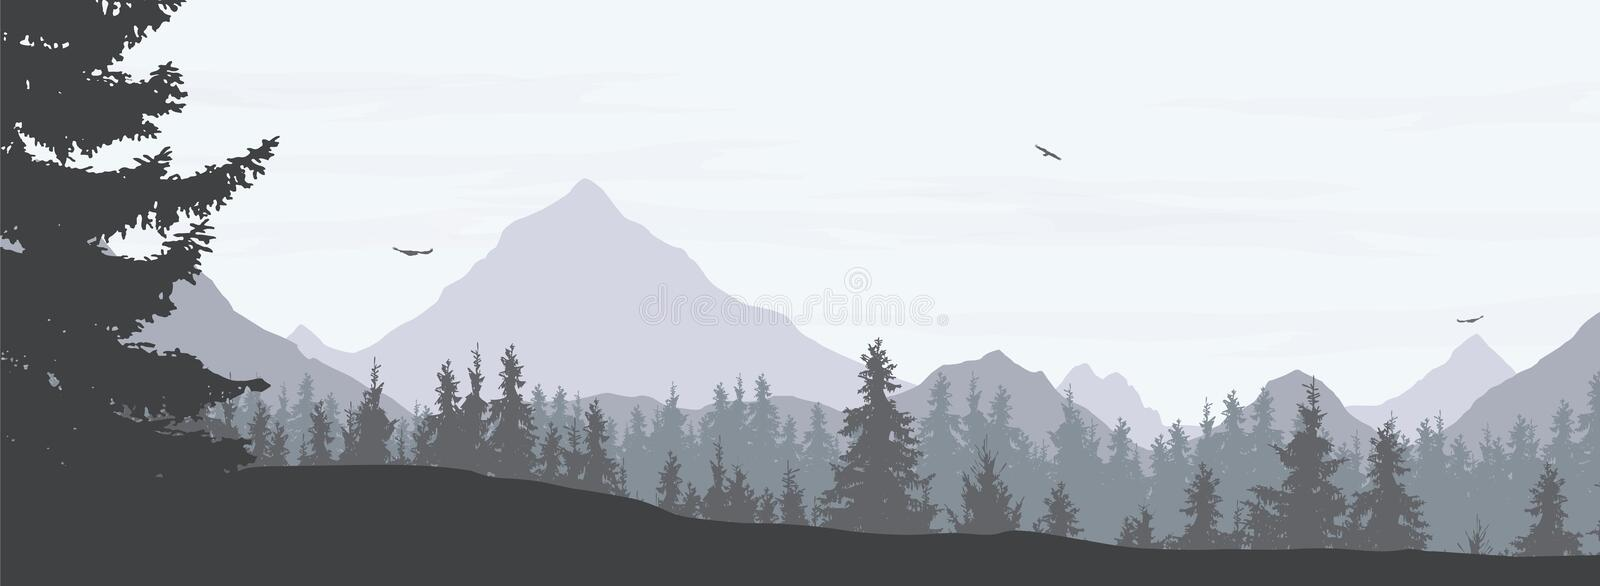 Vector illustration of a snowy winter mountain landscape with co royalty free illustration